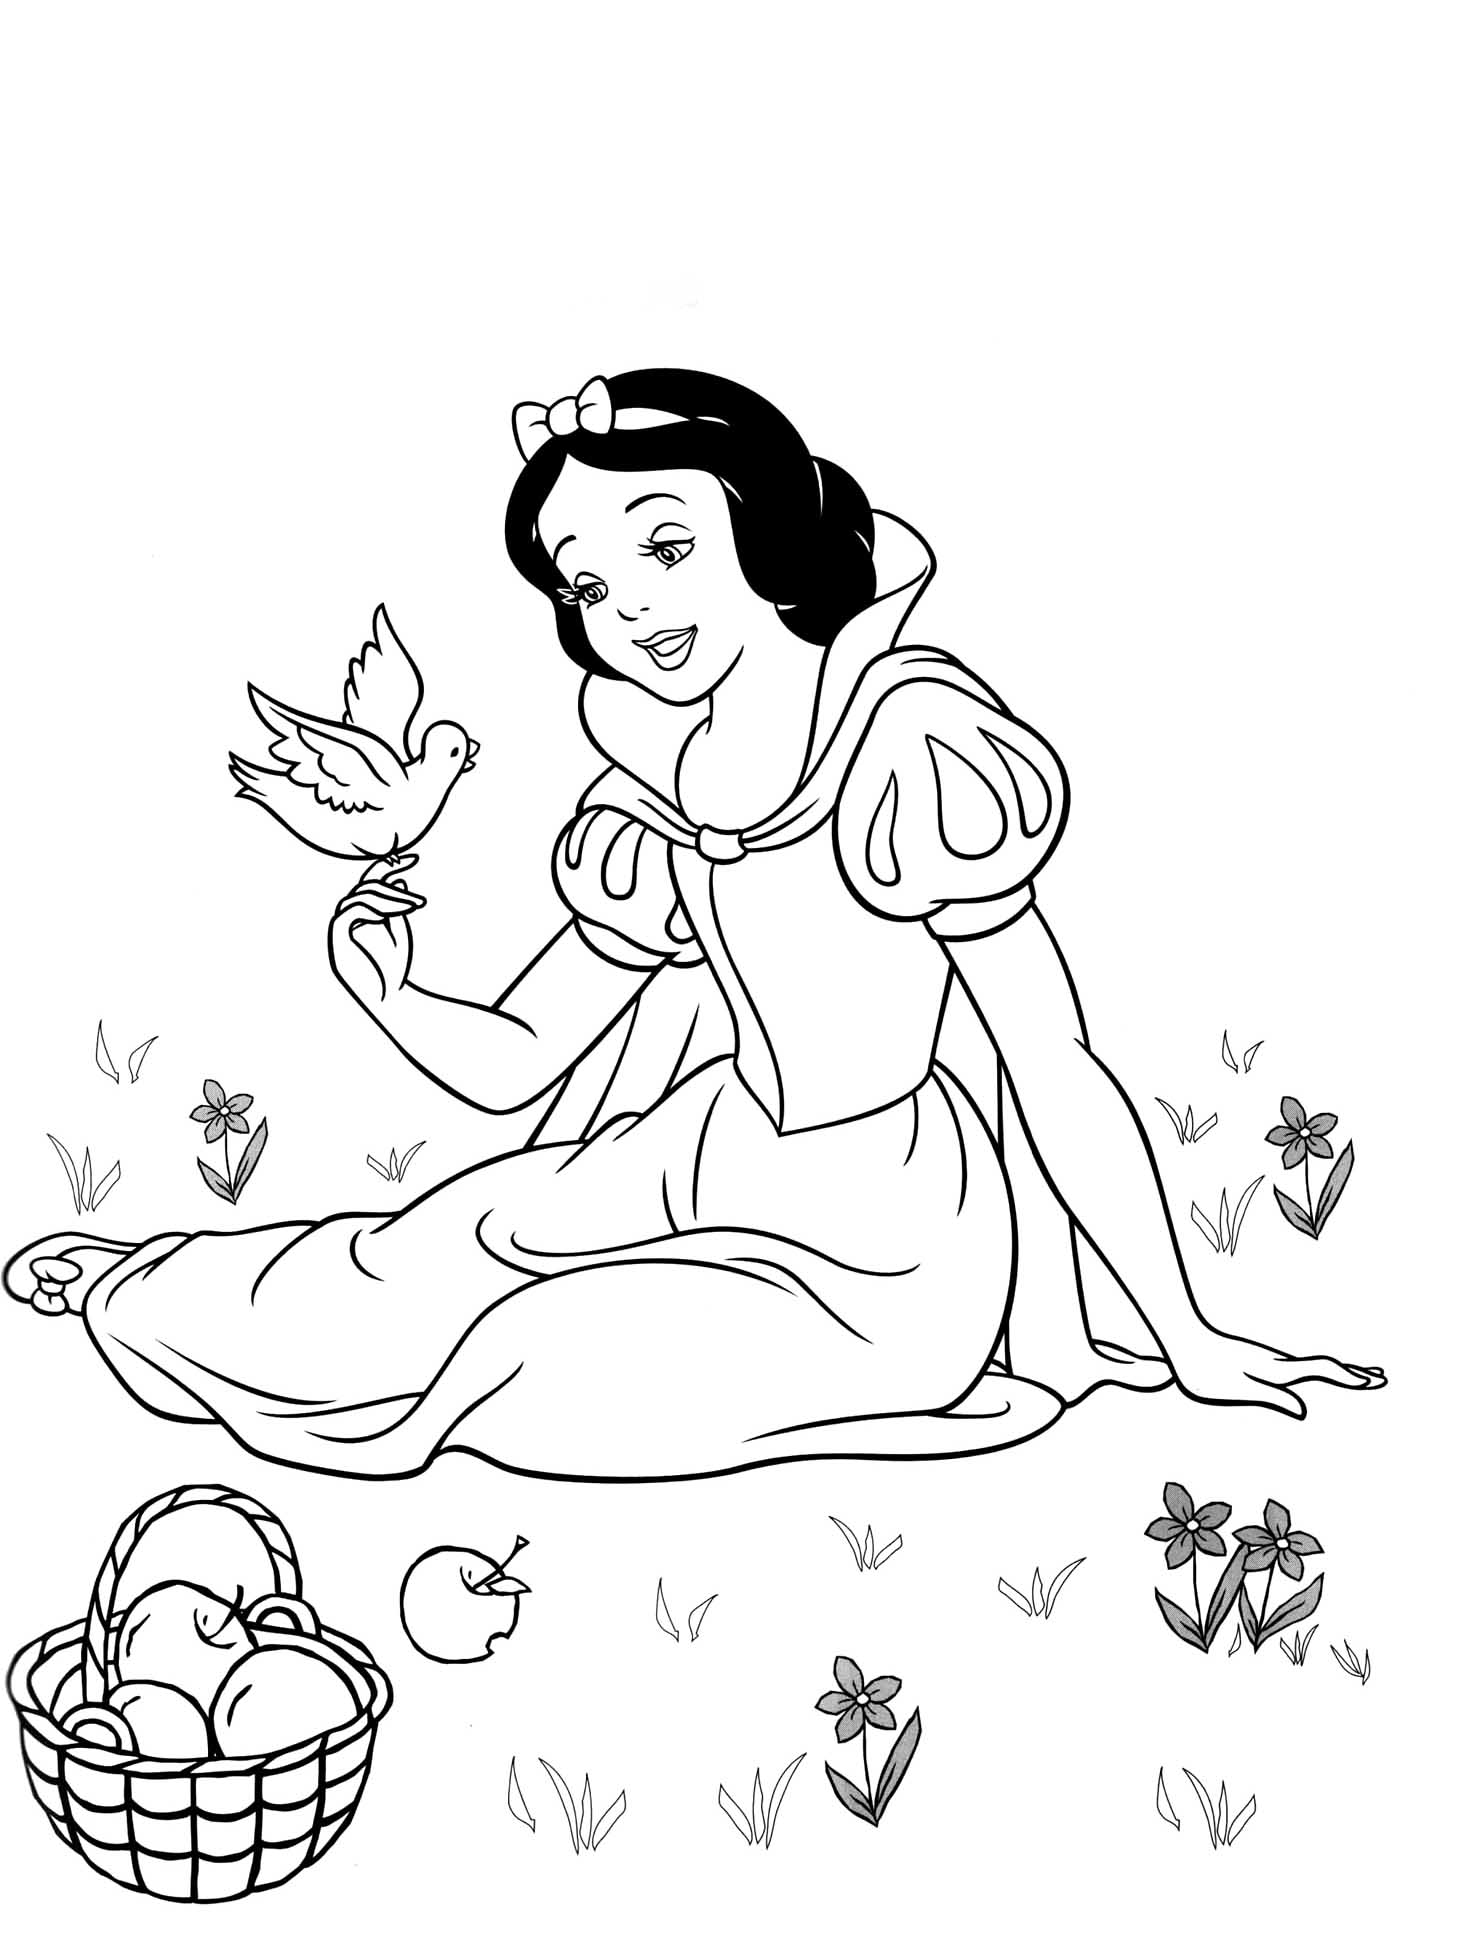 free snow white coloring pages 20 best images about snow white clock on pinterest white free coloring snow pages